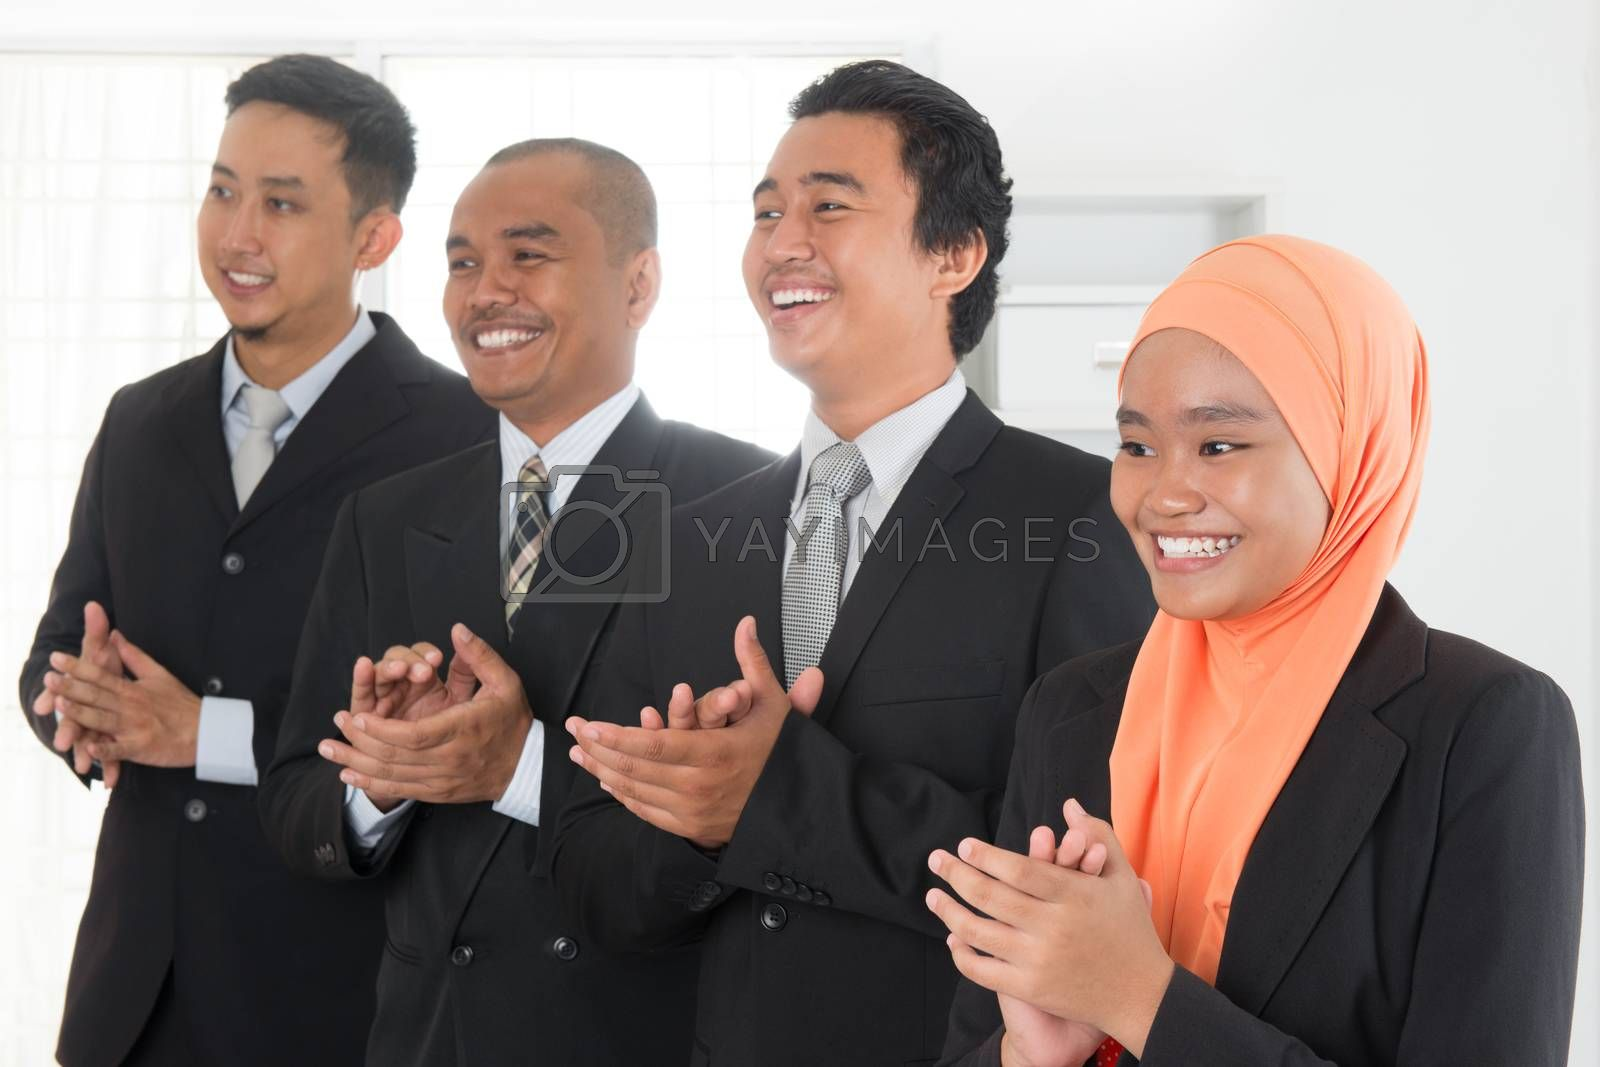 Group of business people standing in line clapping hands inside office room.